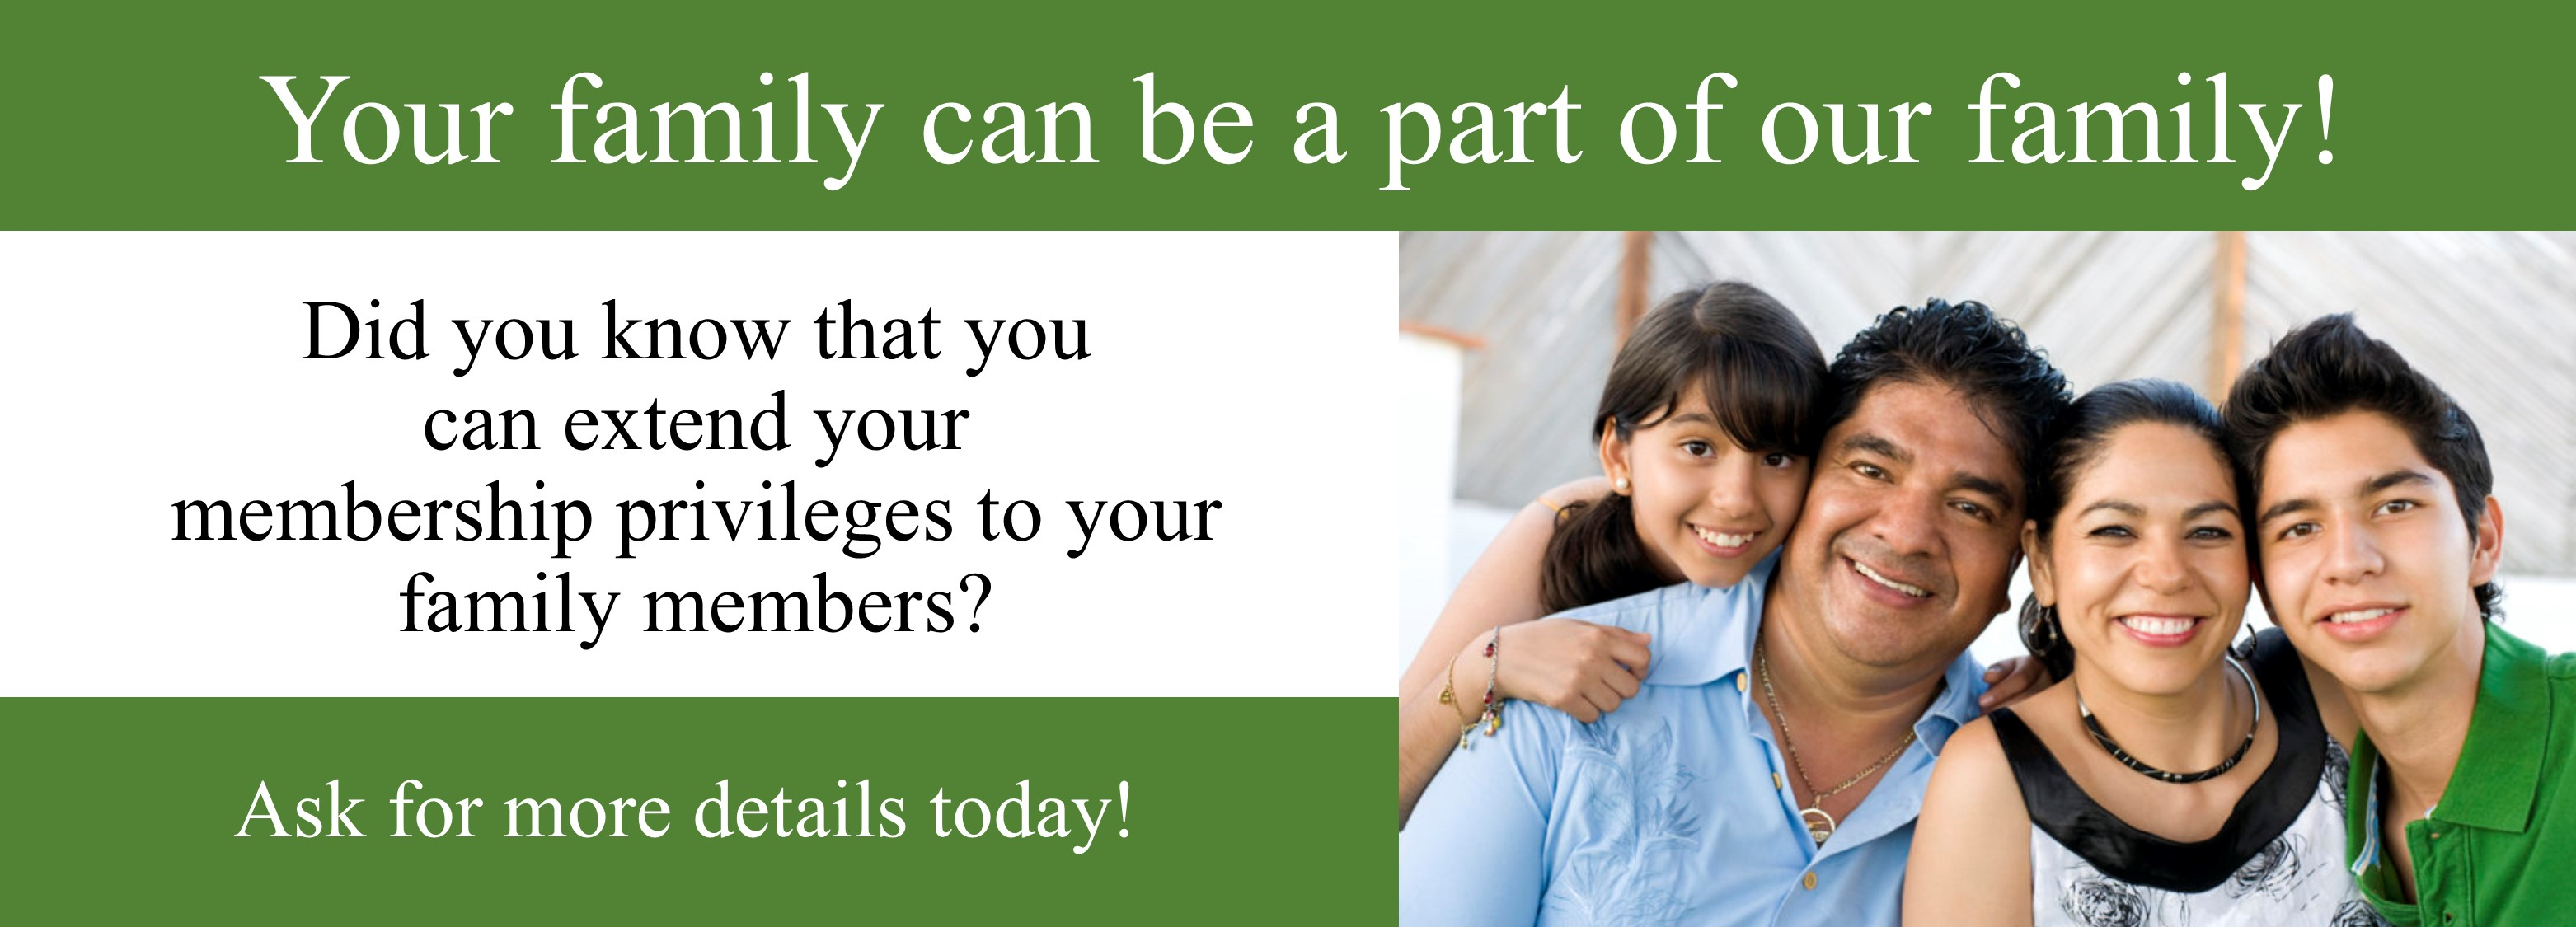 Share the gift of credit union membership with your family. Download our membership application by visiting https://www.hefcu.com/about/membership/ or calling us at 1-800-624-3312.